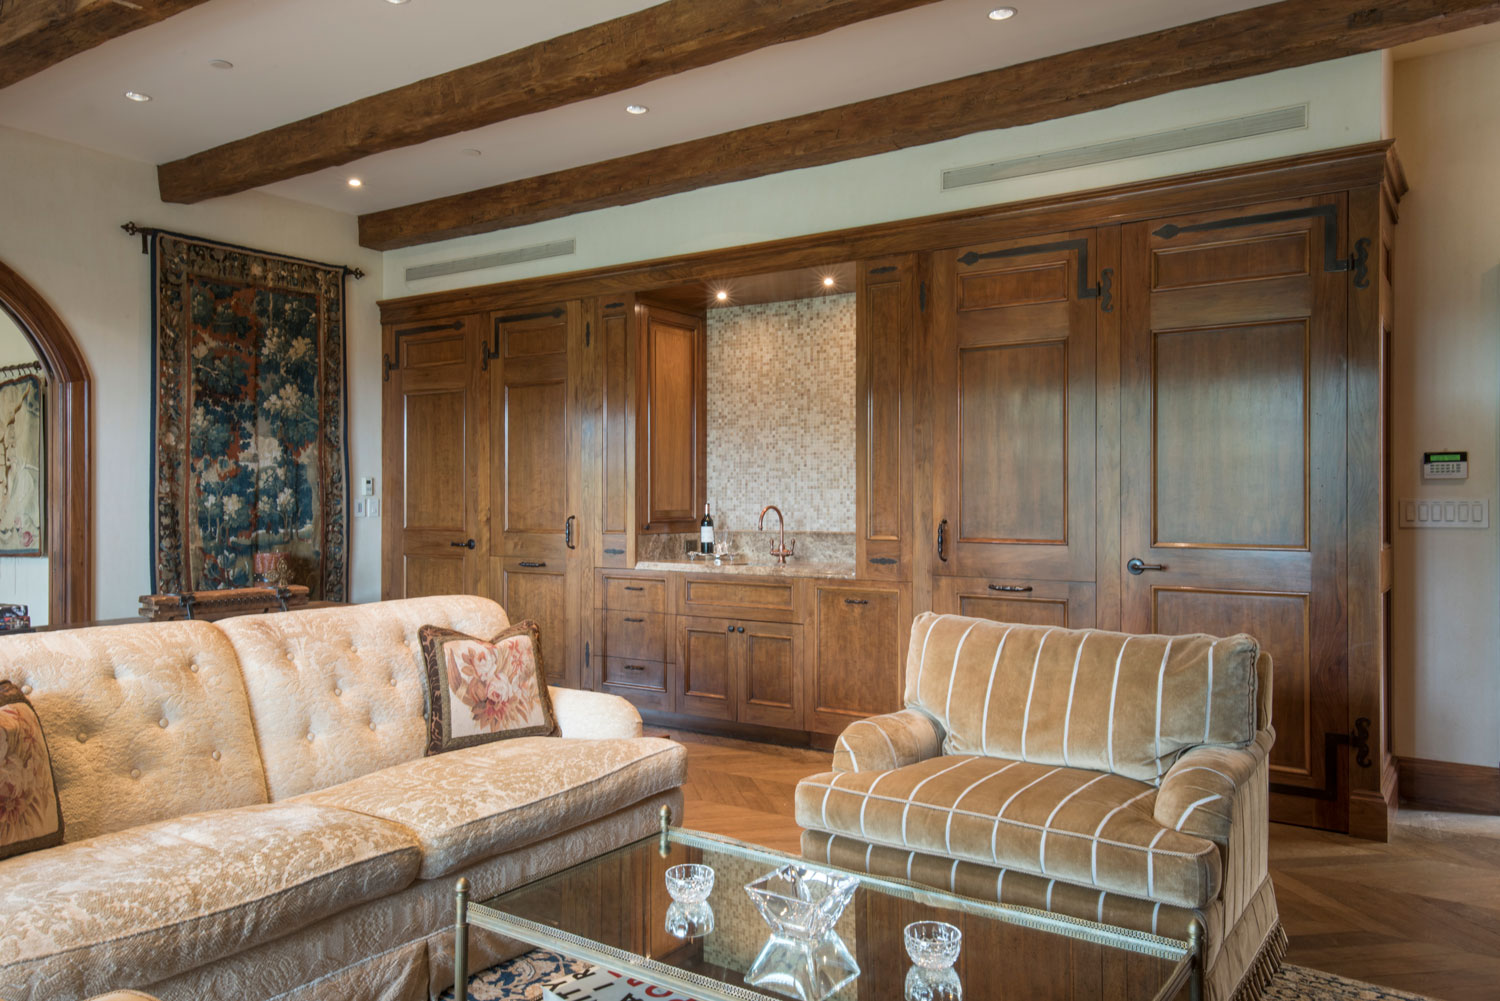 03-traditional-living-room-bar-built-in-cabinets-gary-drake-general-contractor.jpg